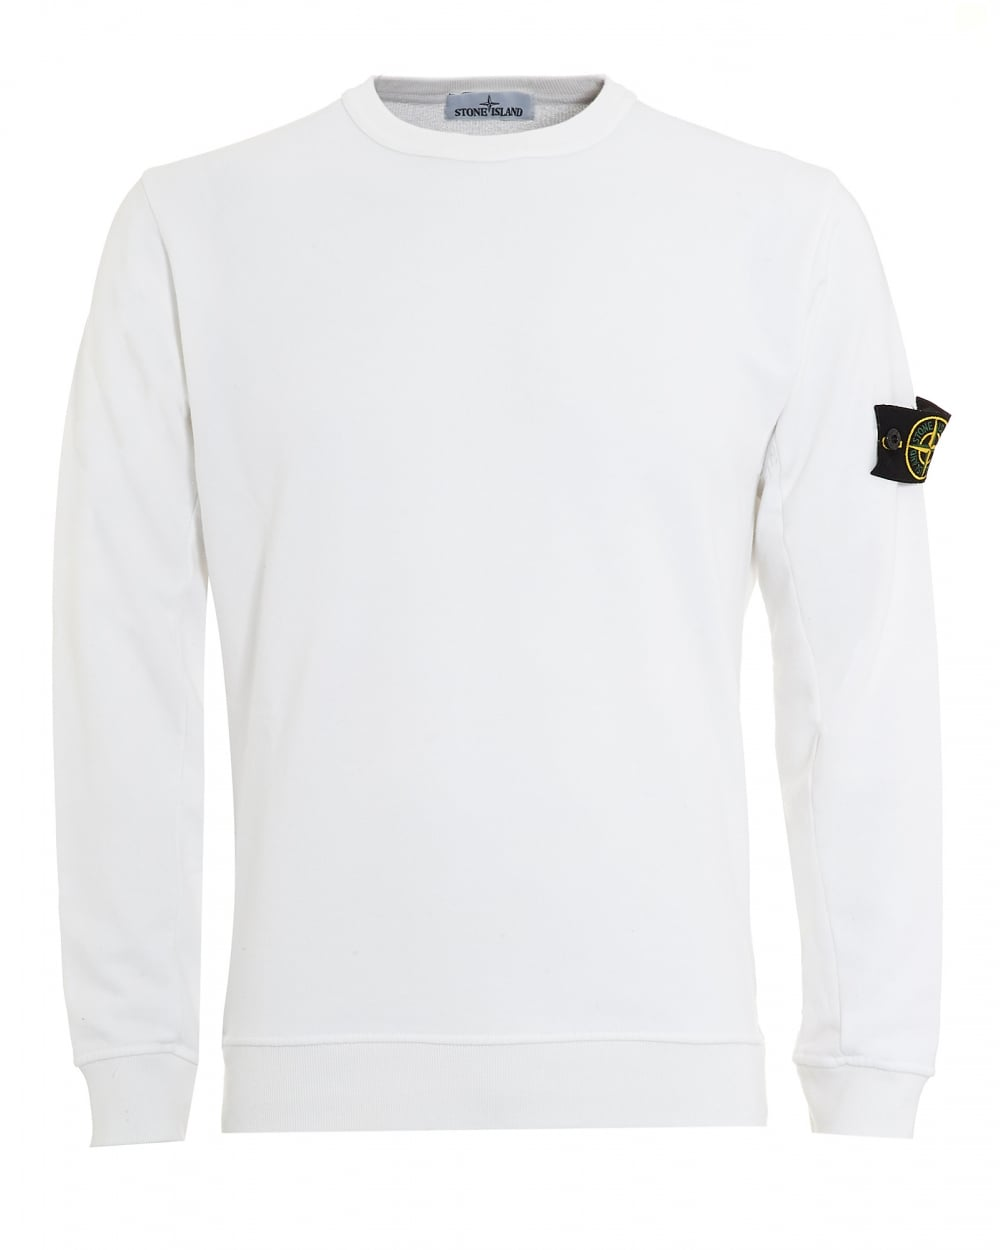 Stone Island Mens Jumper, White Arm Badge Sweater